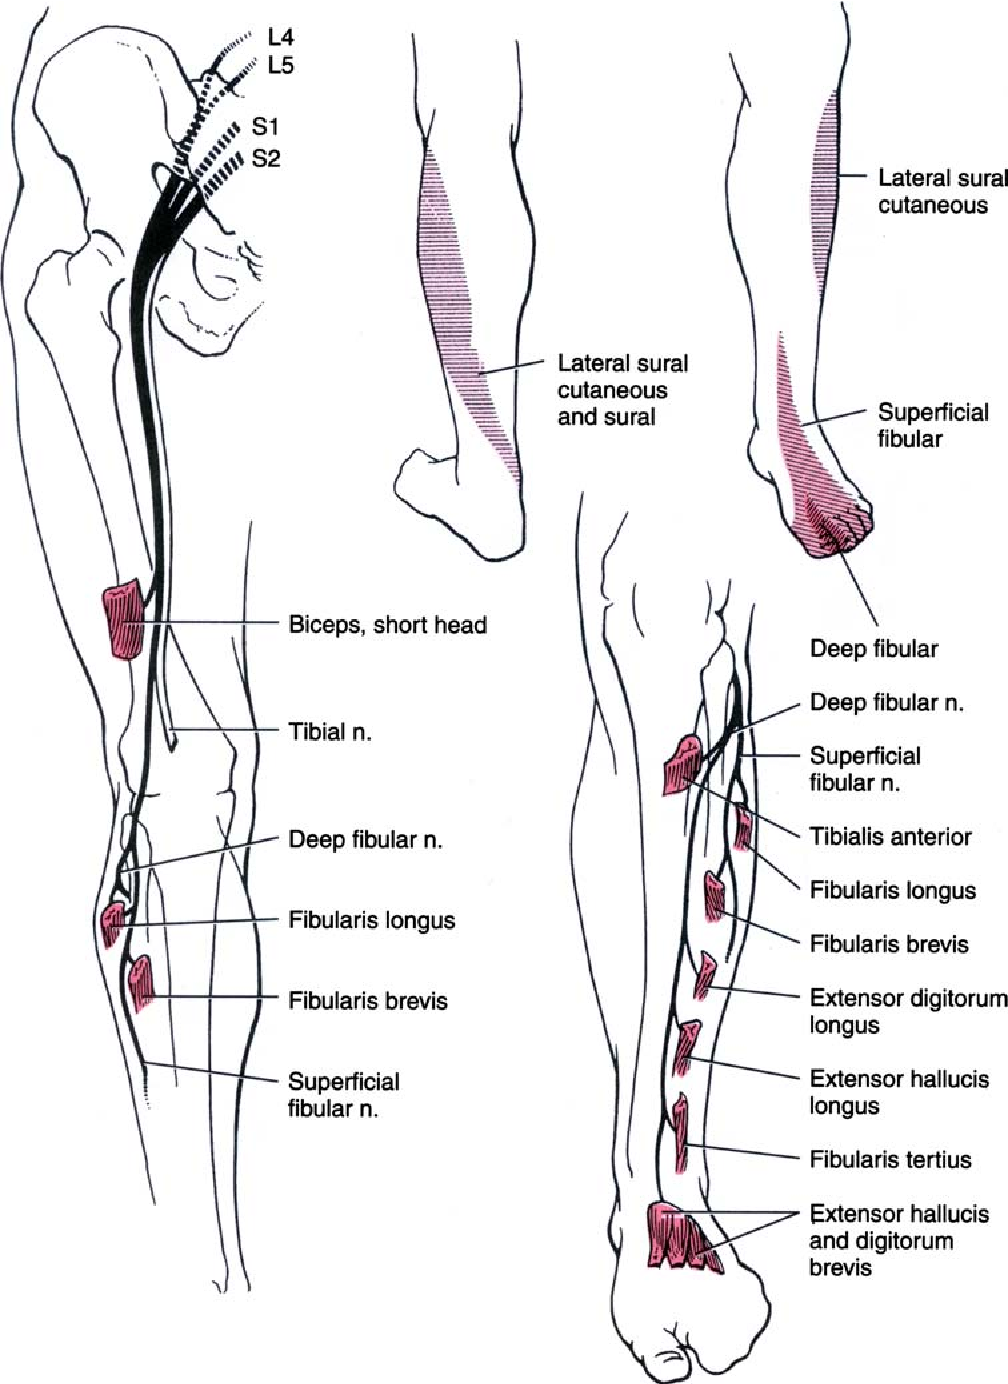 Evaluation and treatment of peroneal neuropathy - Semantic Scholar